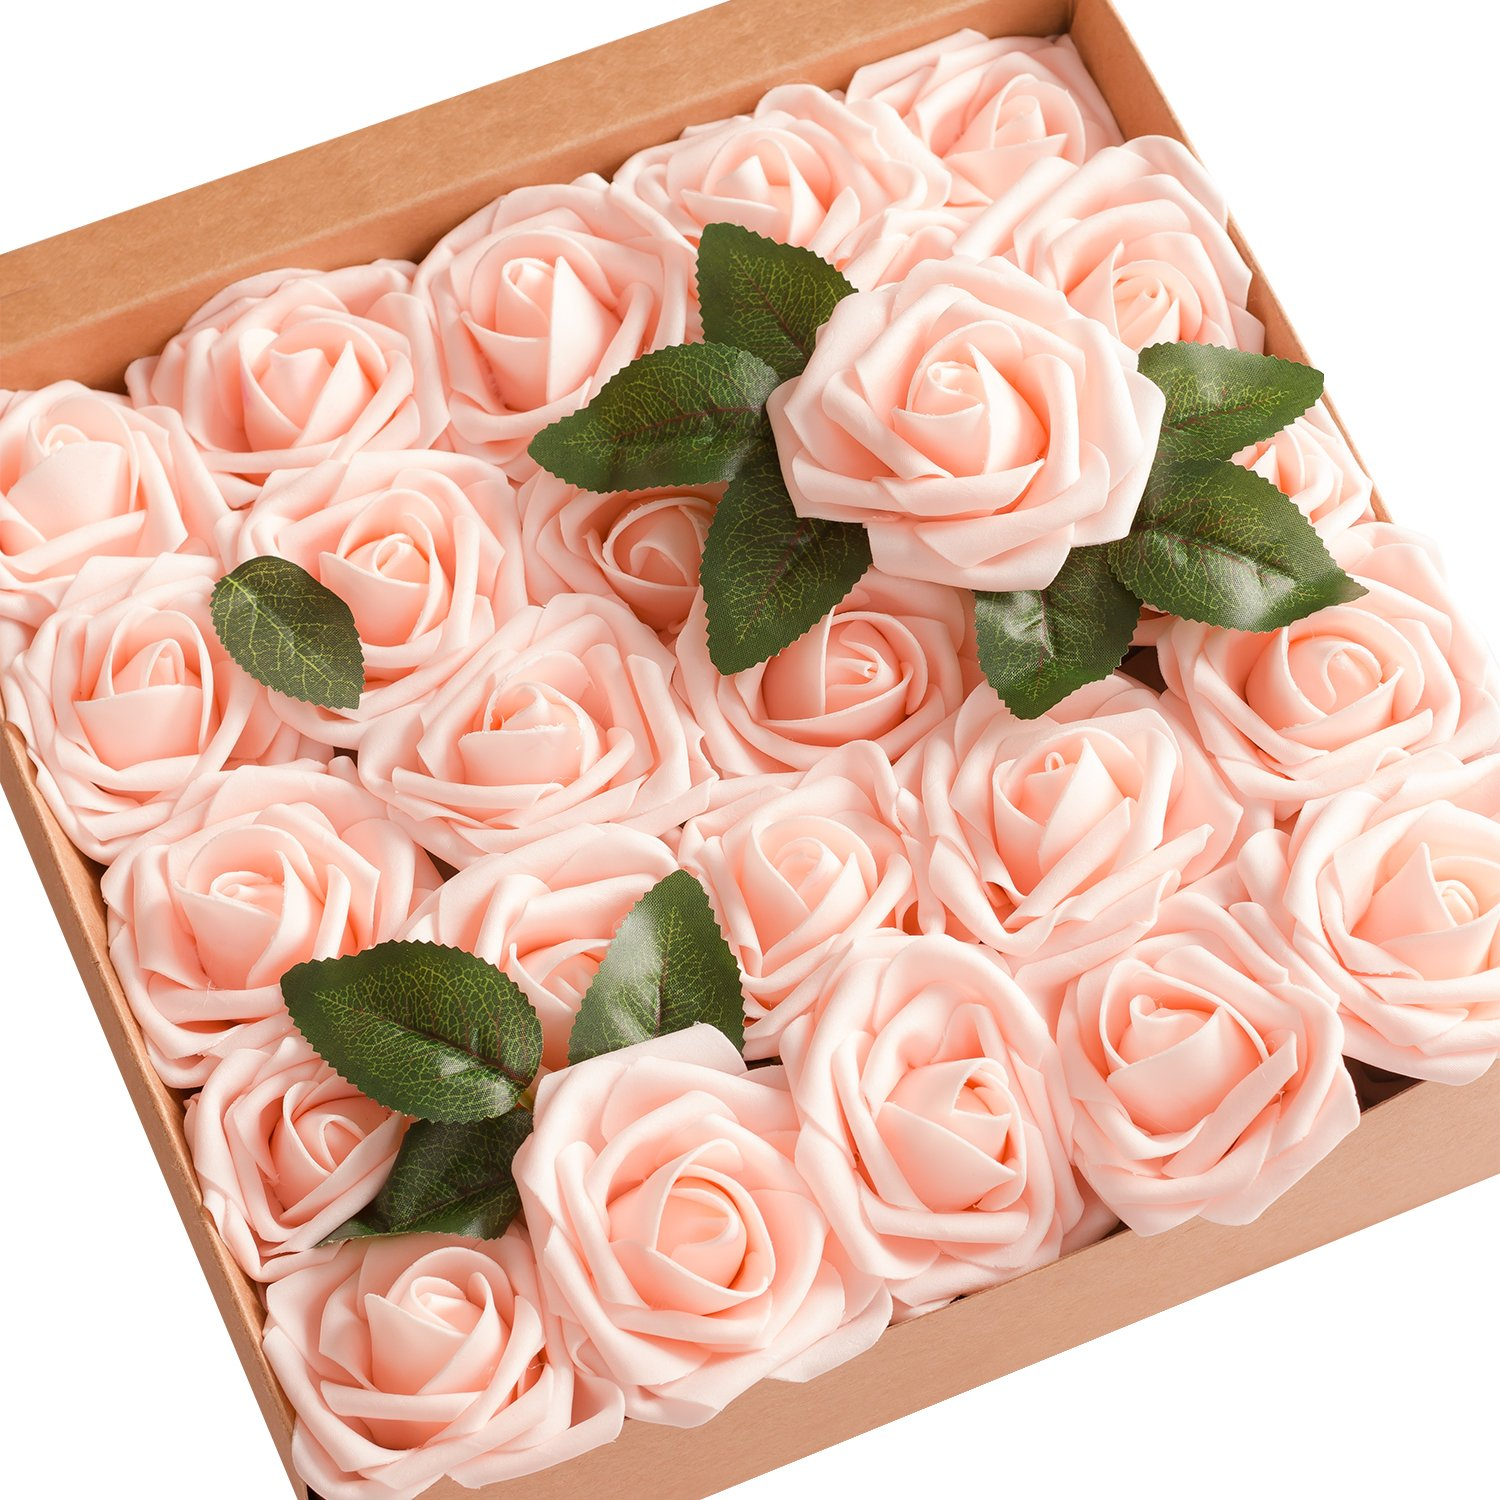 Ling Moment Artificial Flowers Blush Pink Roses 25pcs Real Looking